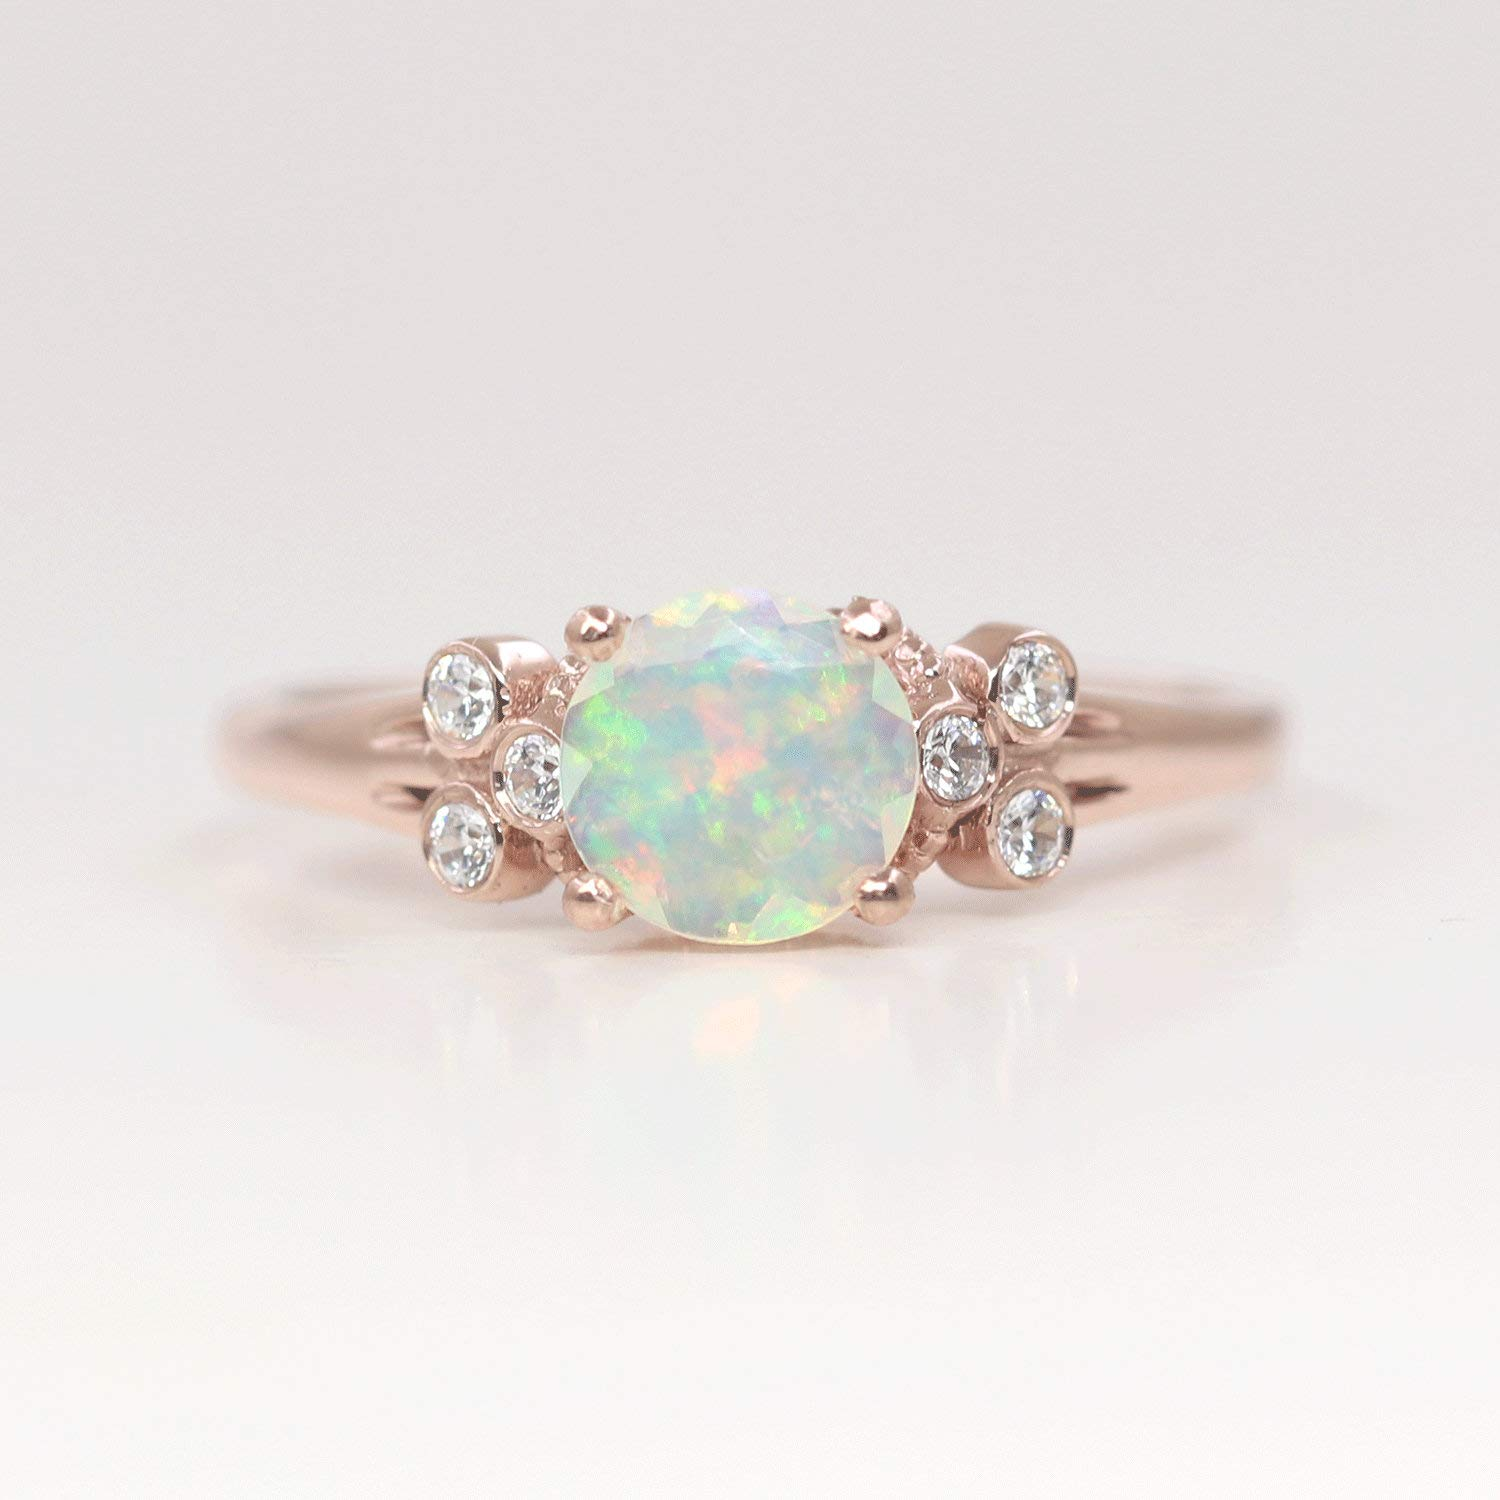 Diamond Cut Natural Opal Engagement Ring,6 mm Opal Diamond Ring,Dainty Opal Diamond Wedding Ring,Diamond Cluster Ring.Natural Rainbow Opal